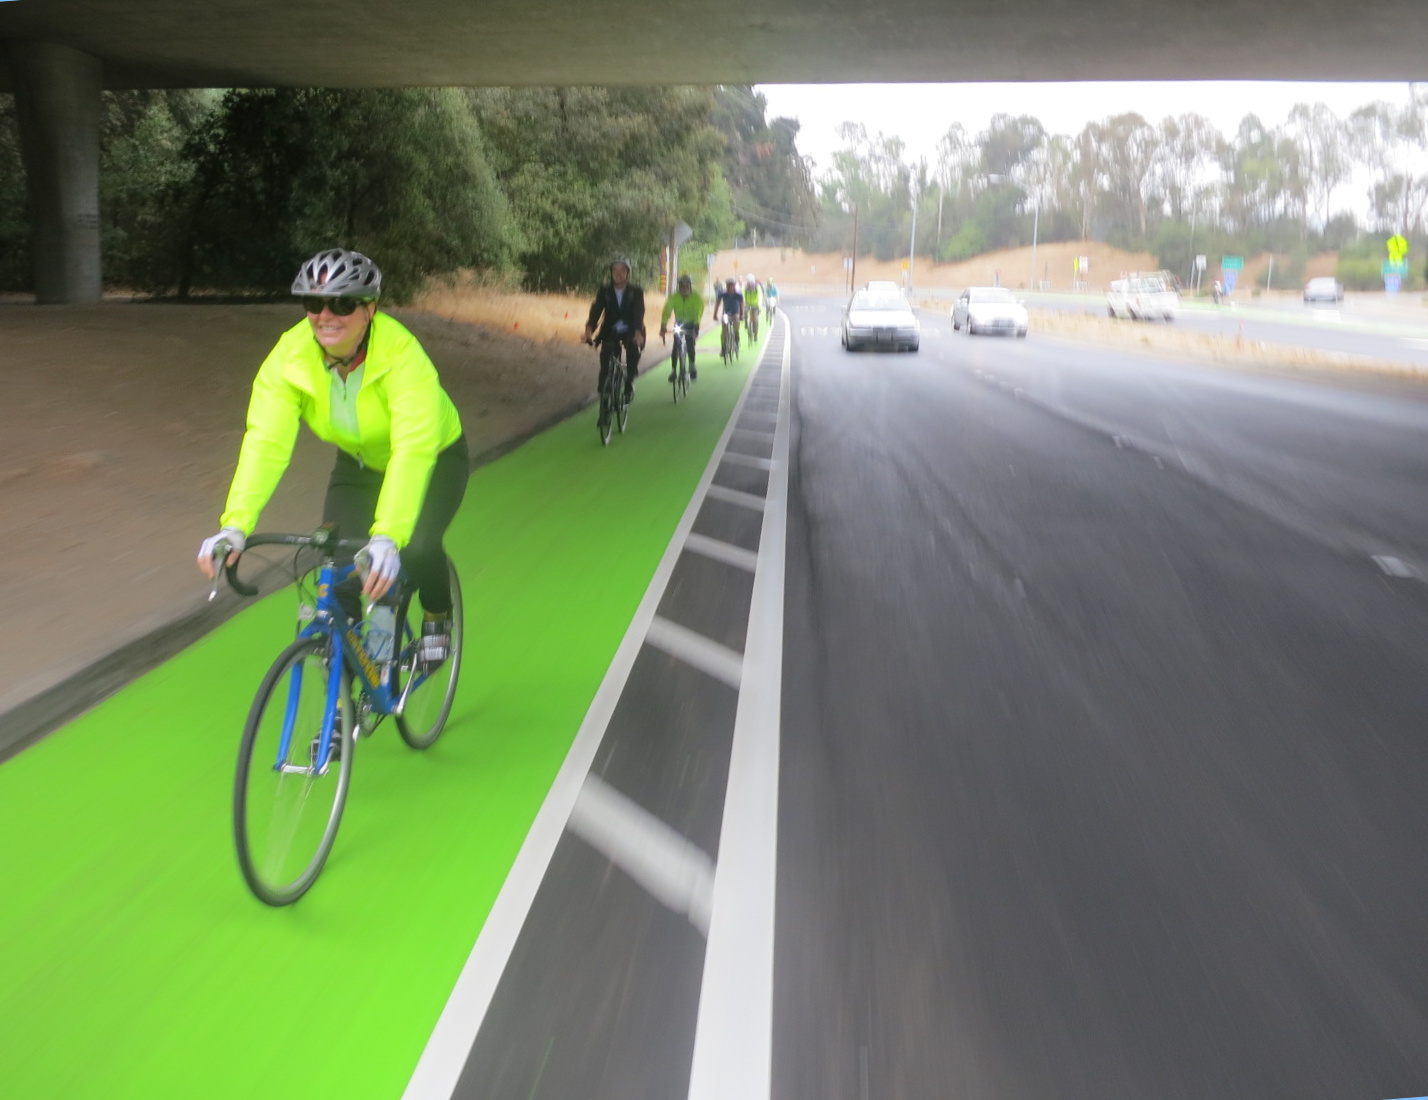 Menlo Park City Council Member Kirsten Keith enjoys the new green and buffered bike lane at Alpine Road and Highway 280. Photo: Andrew Boone